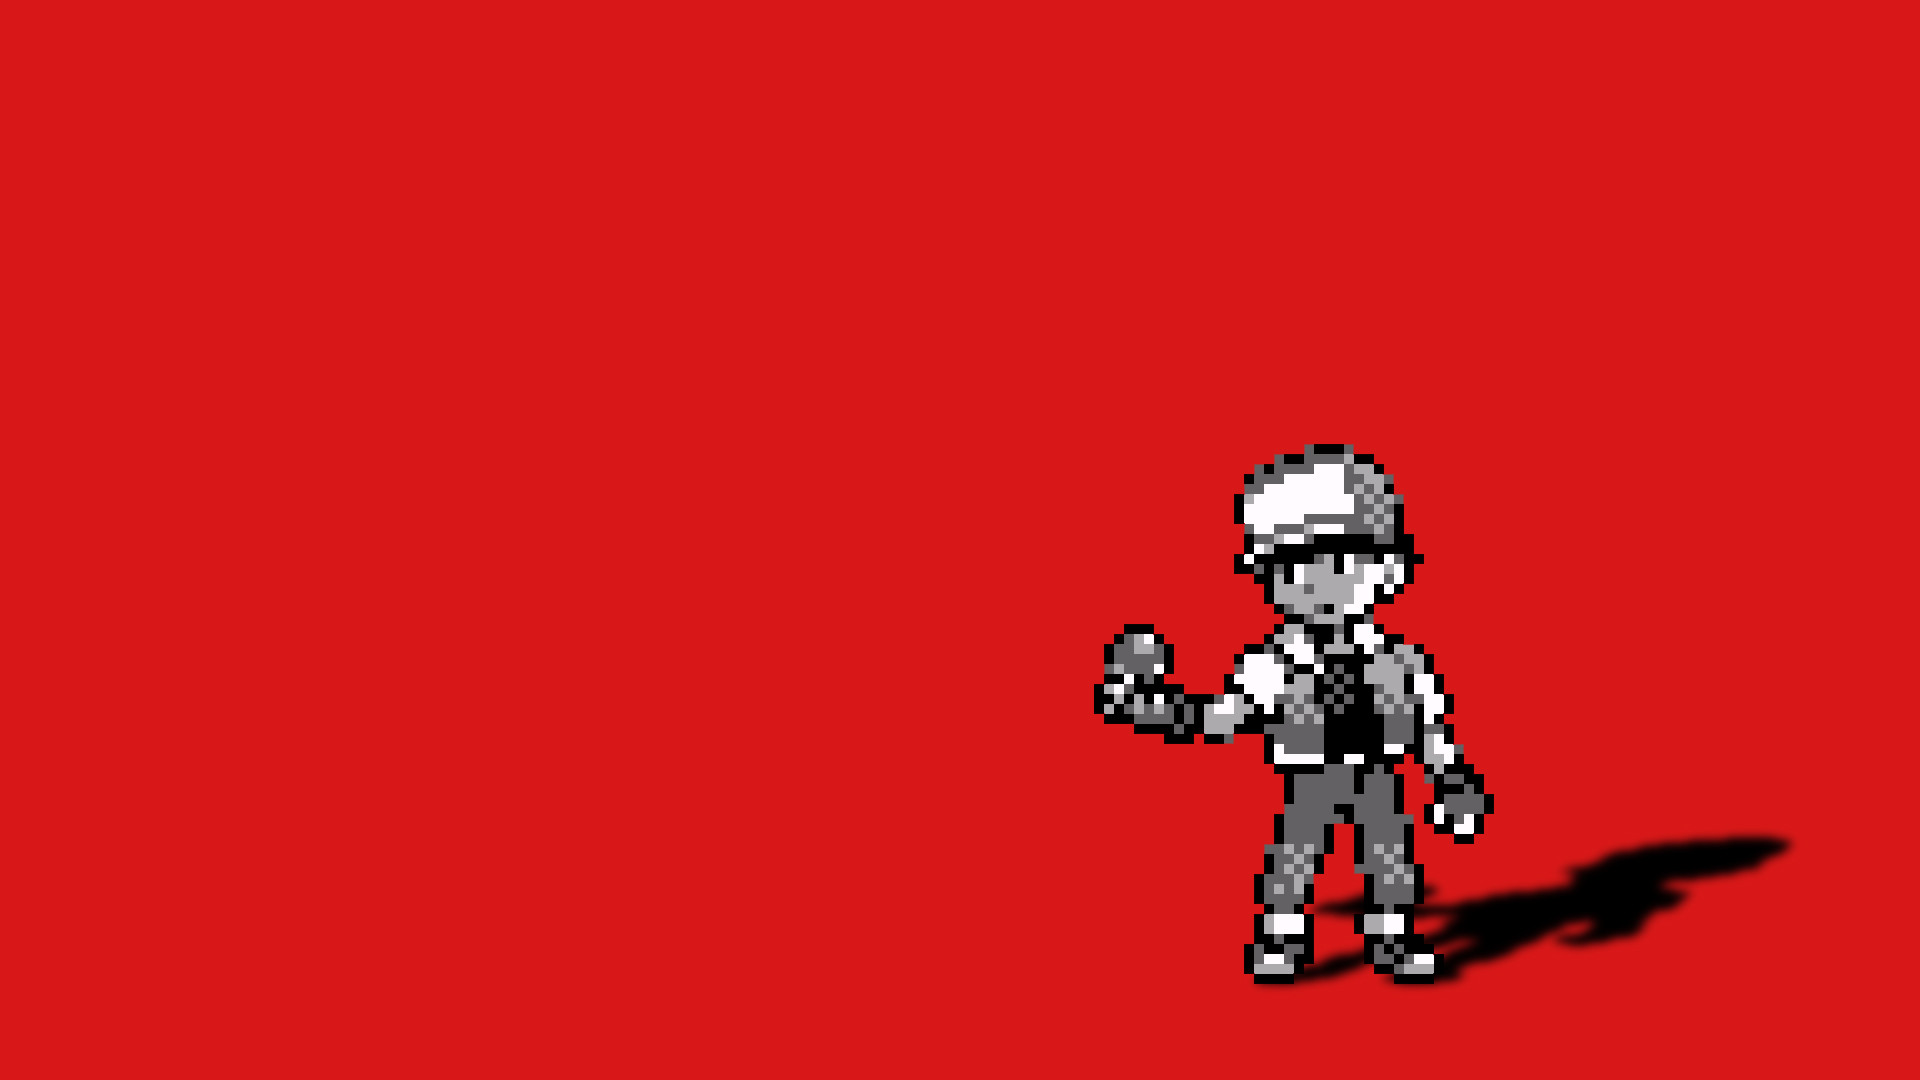 1920x1080 Pokemon Red Wallpaper Desktop On Wallpaper 1080p HD